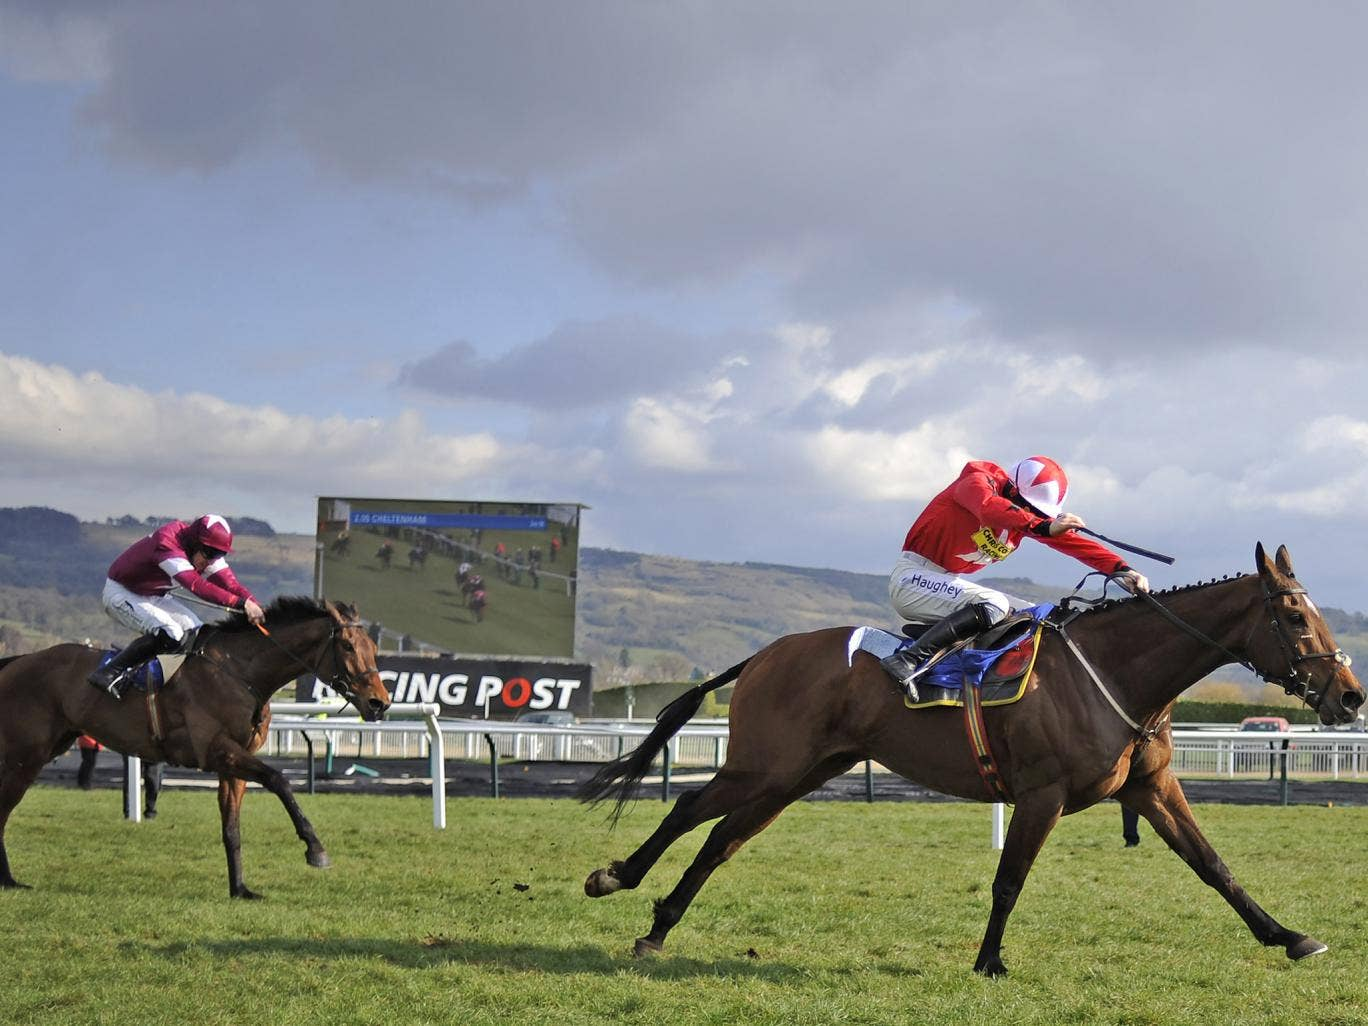 Sam Twiston-Davies rides The New One clear the last to win The Neptune Investment Management Novices' Hurdle Race